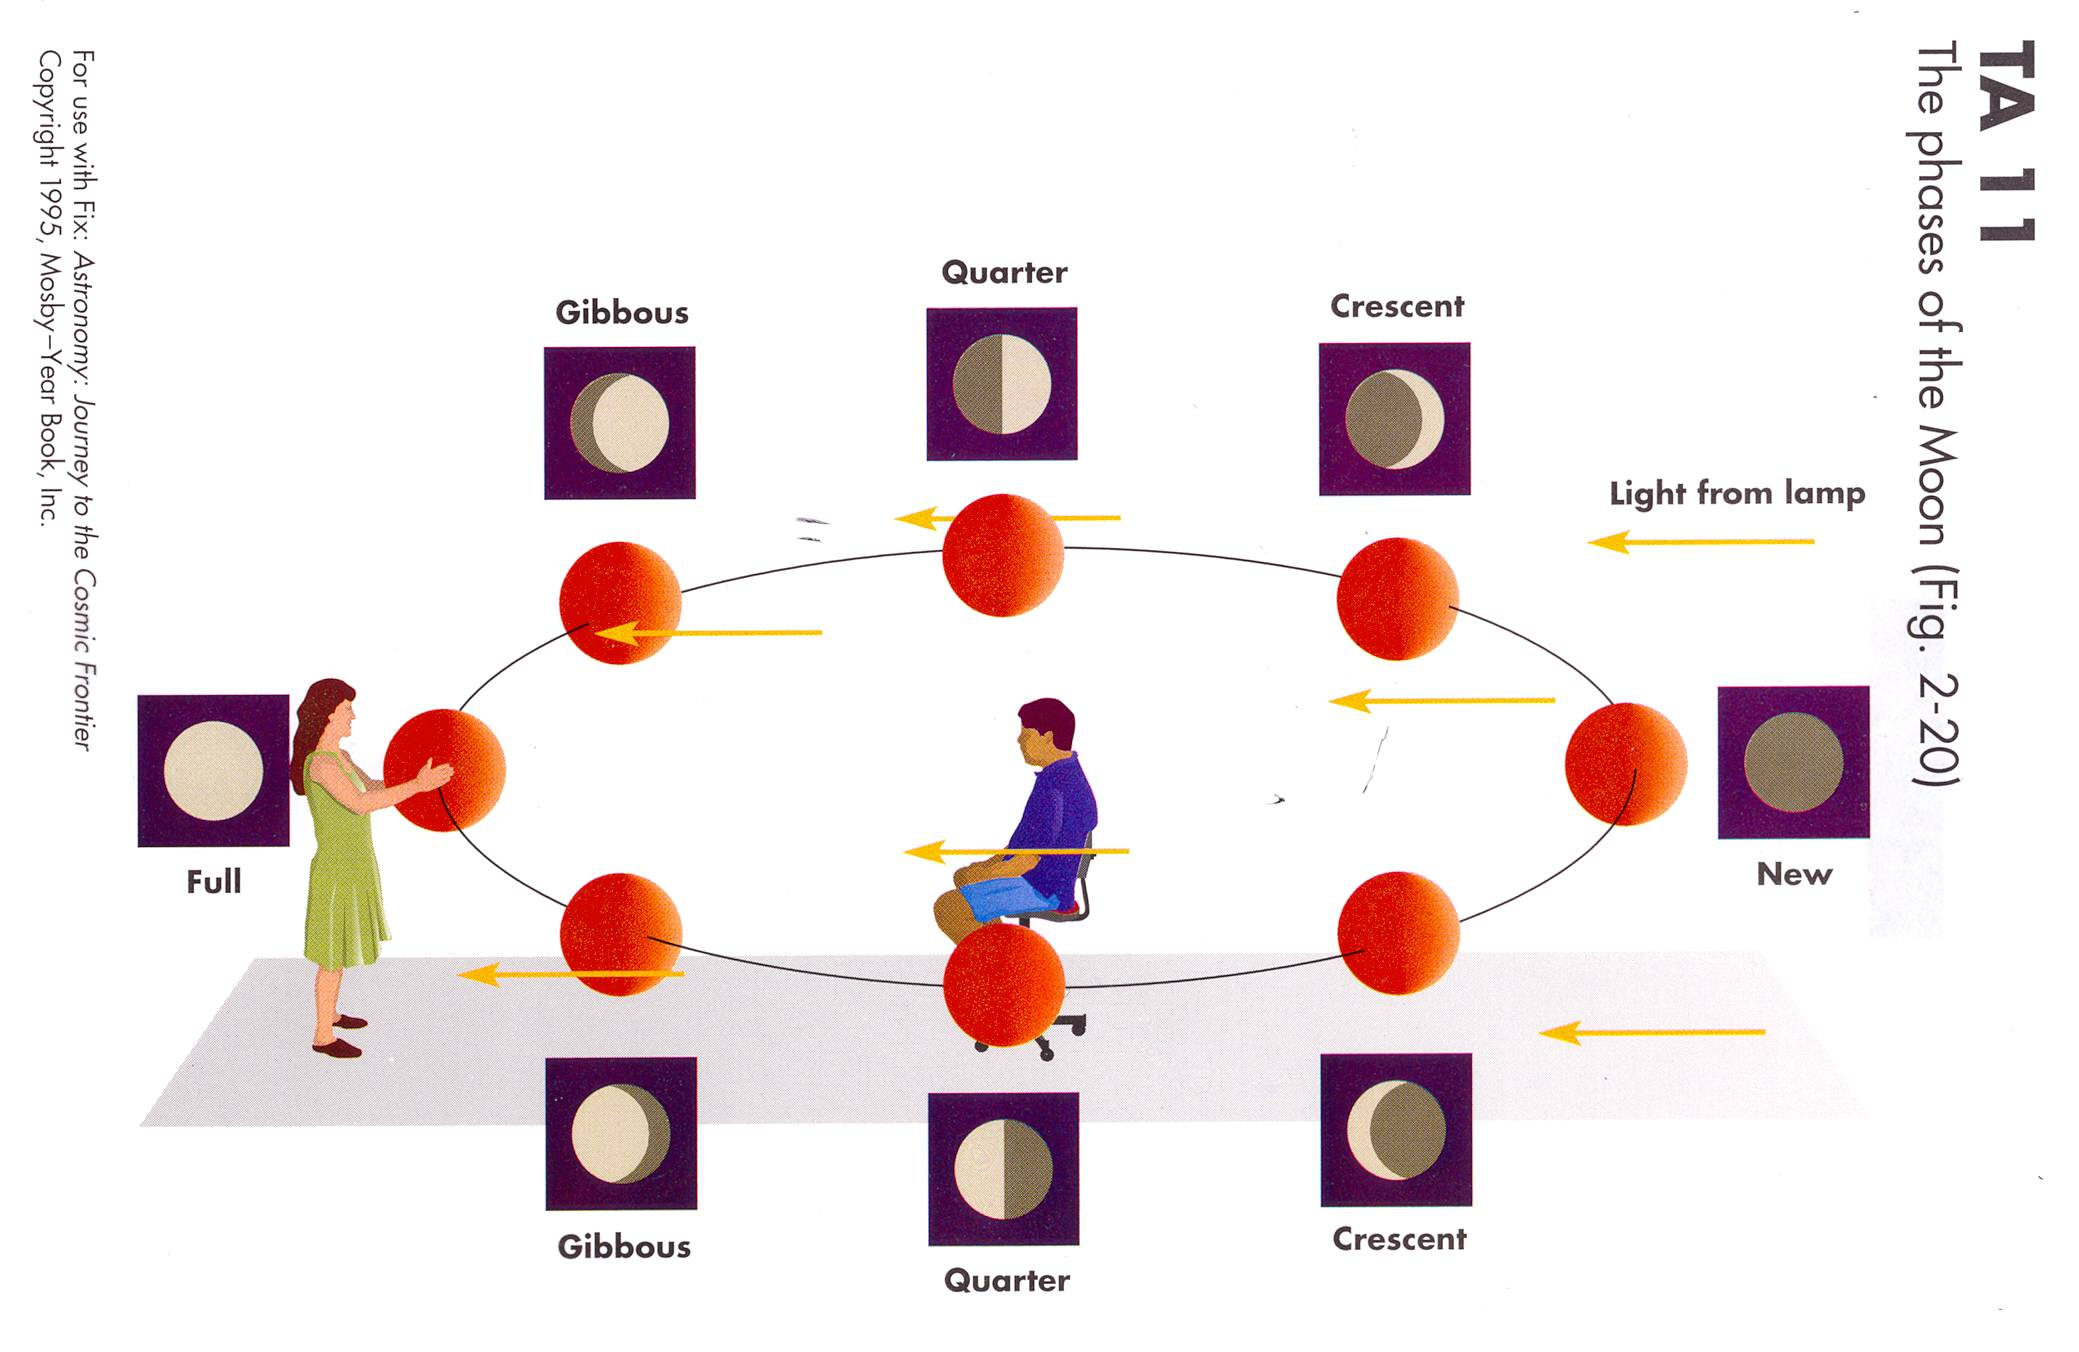 Oklahoma Space Stuff Lunar Phases Diagram In A Room